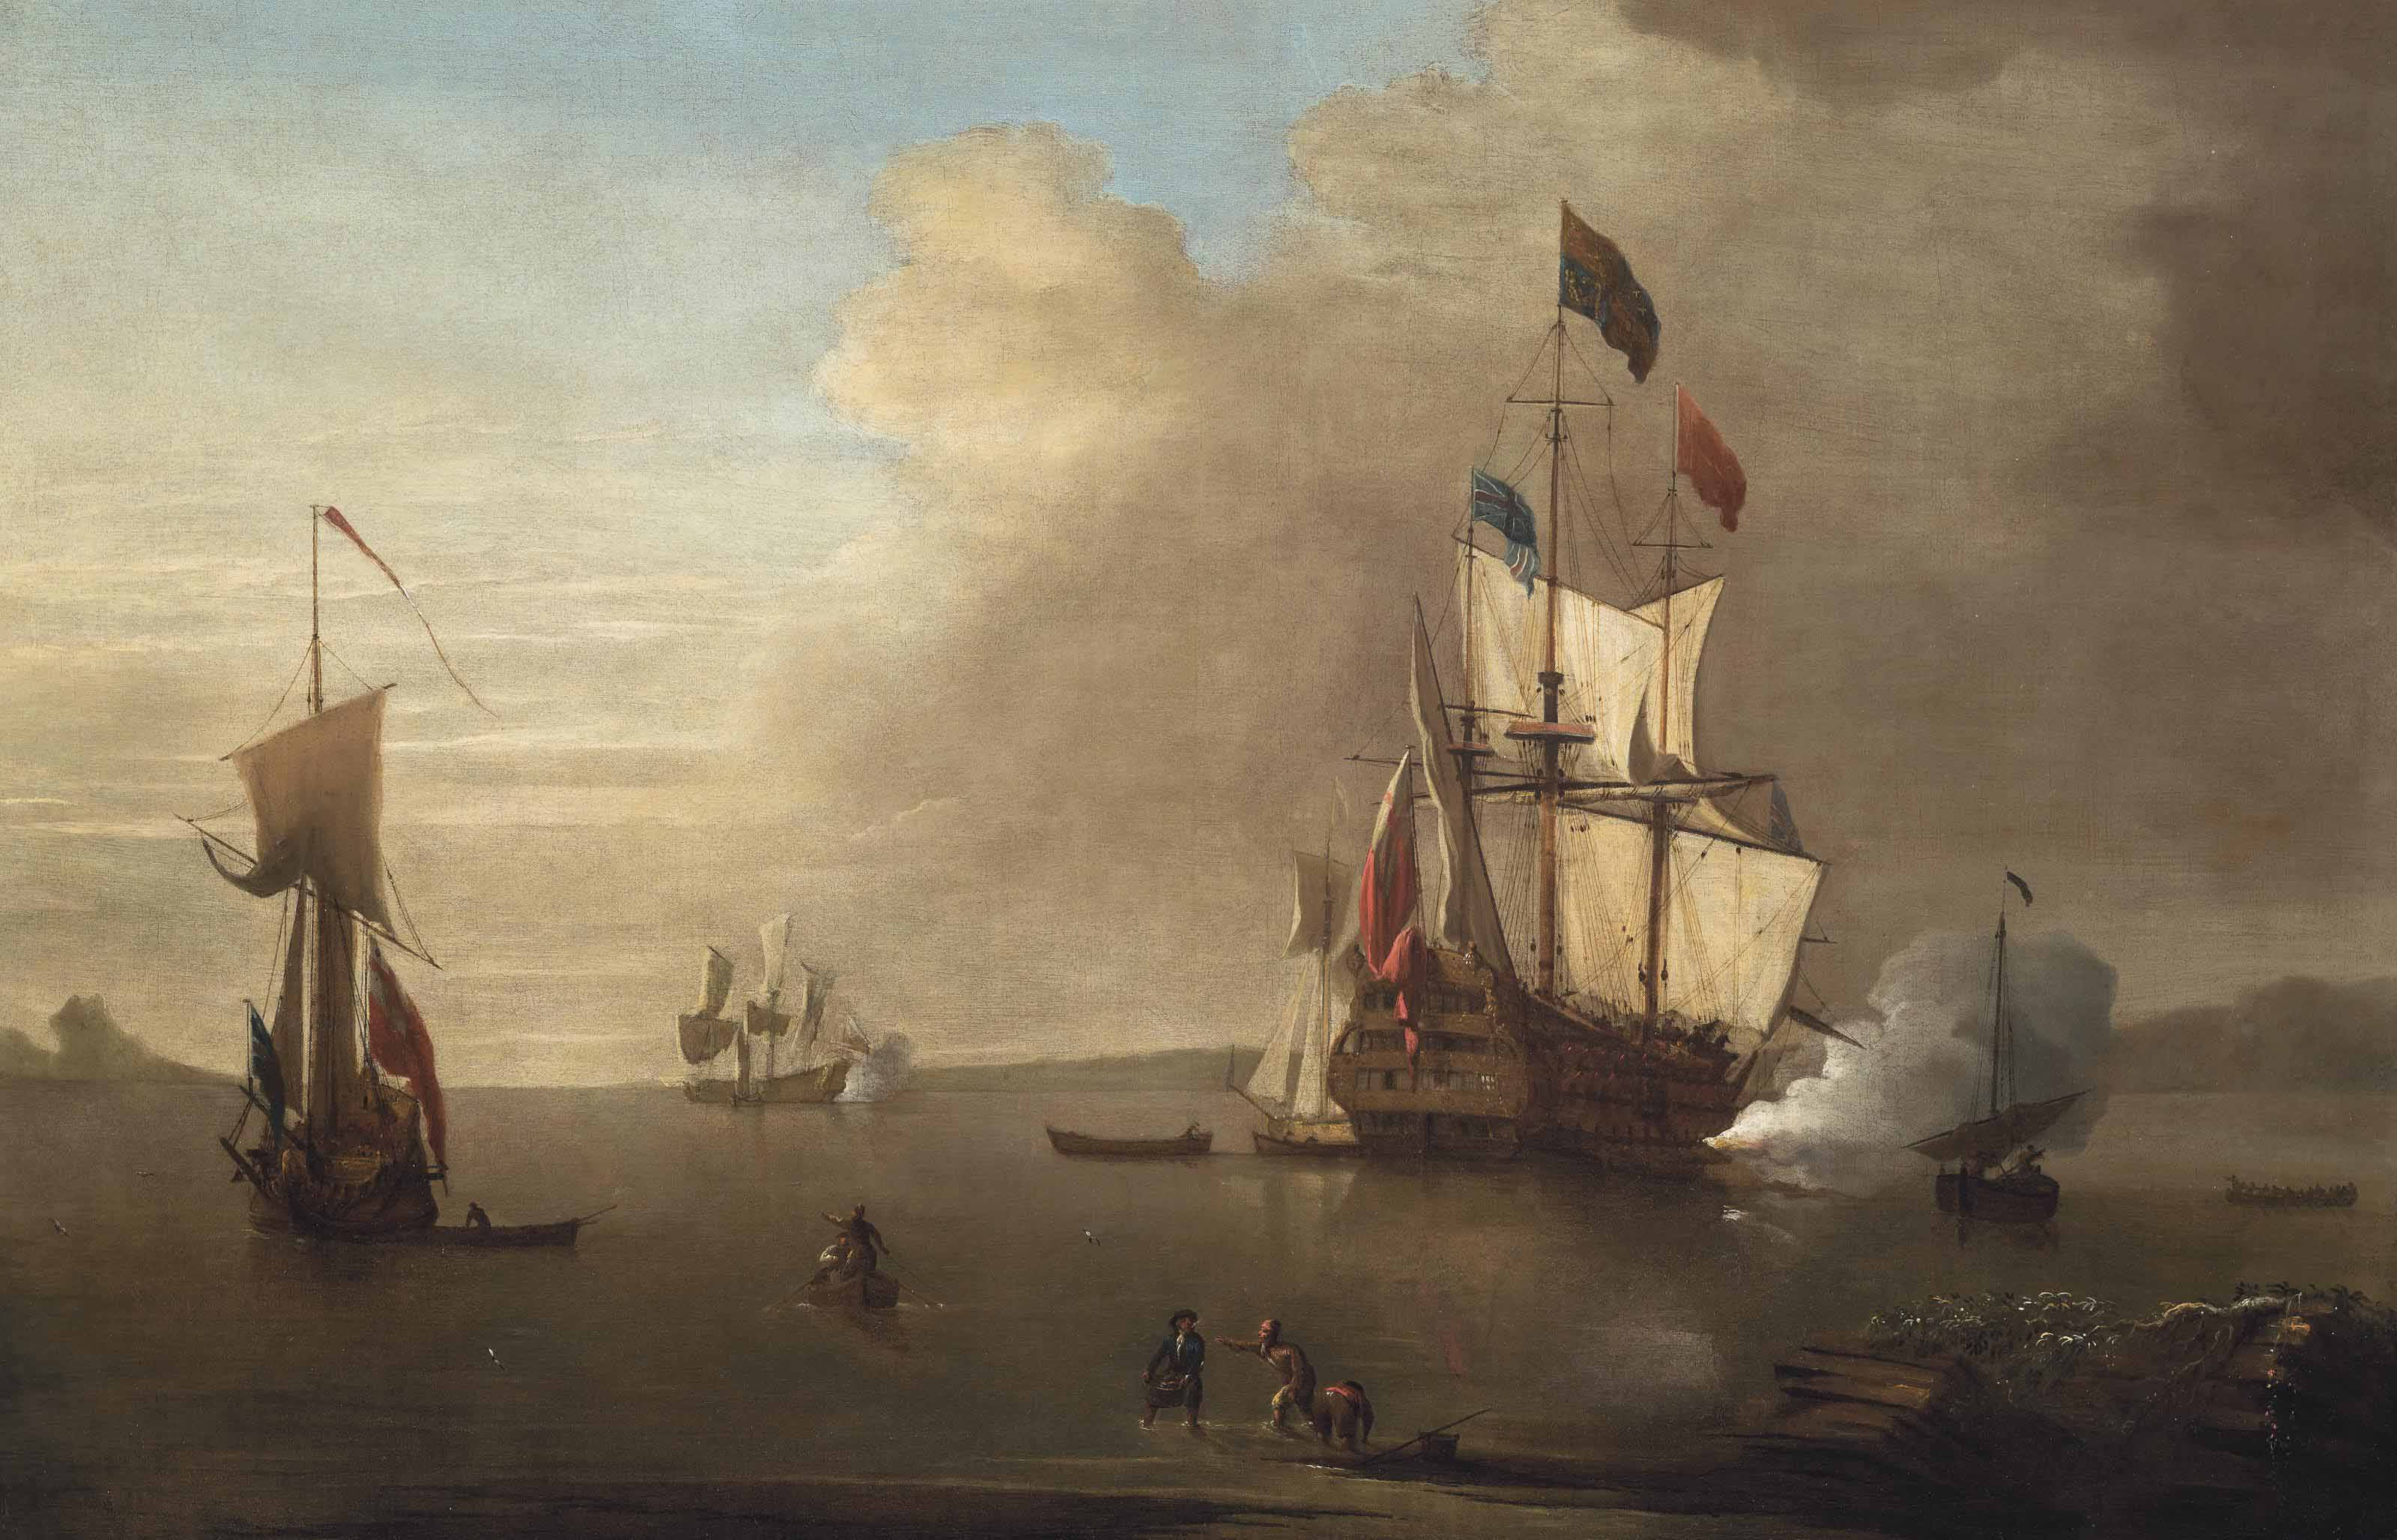 The flagship of a Rear-Admiral of the Red, with an Admiral of the Fleet aboard, firing a salute to acknowledge the longboat approaching her starboard quarter which is probably carrying a distinguished visitor wanting to come aboard